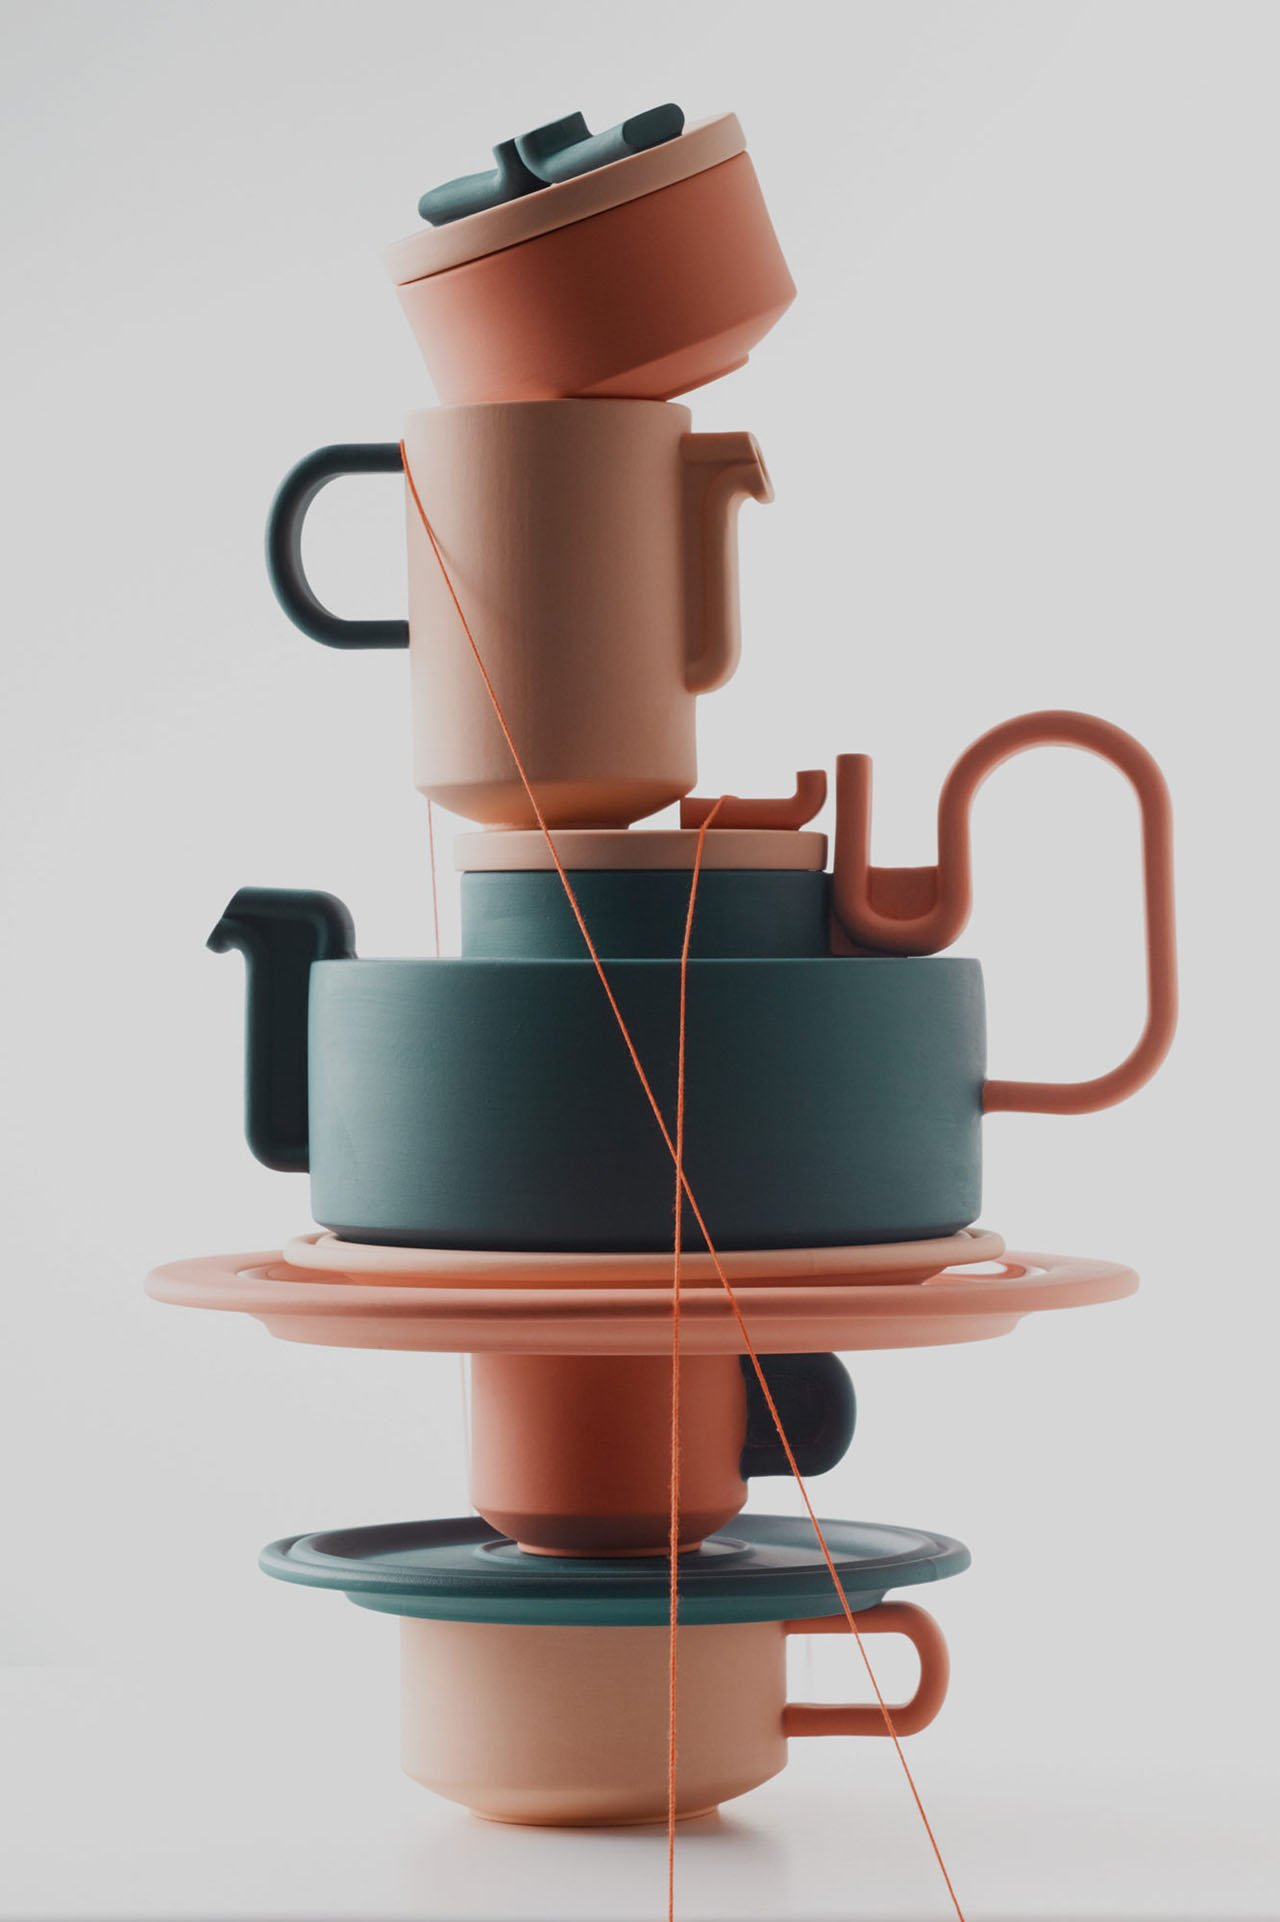 TONGUE tea service series by Bethan Laura Wood for Rosenthal.